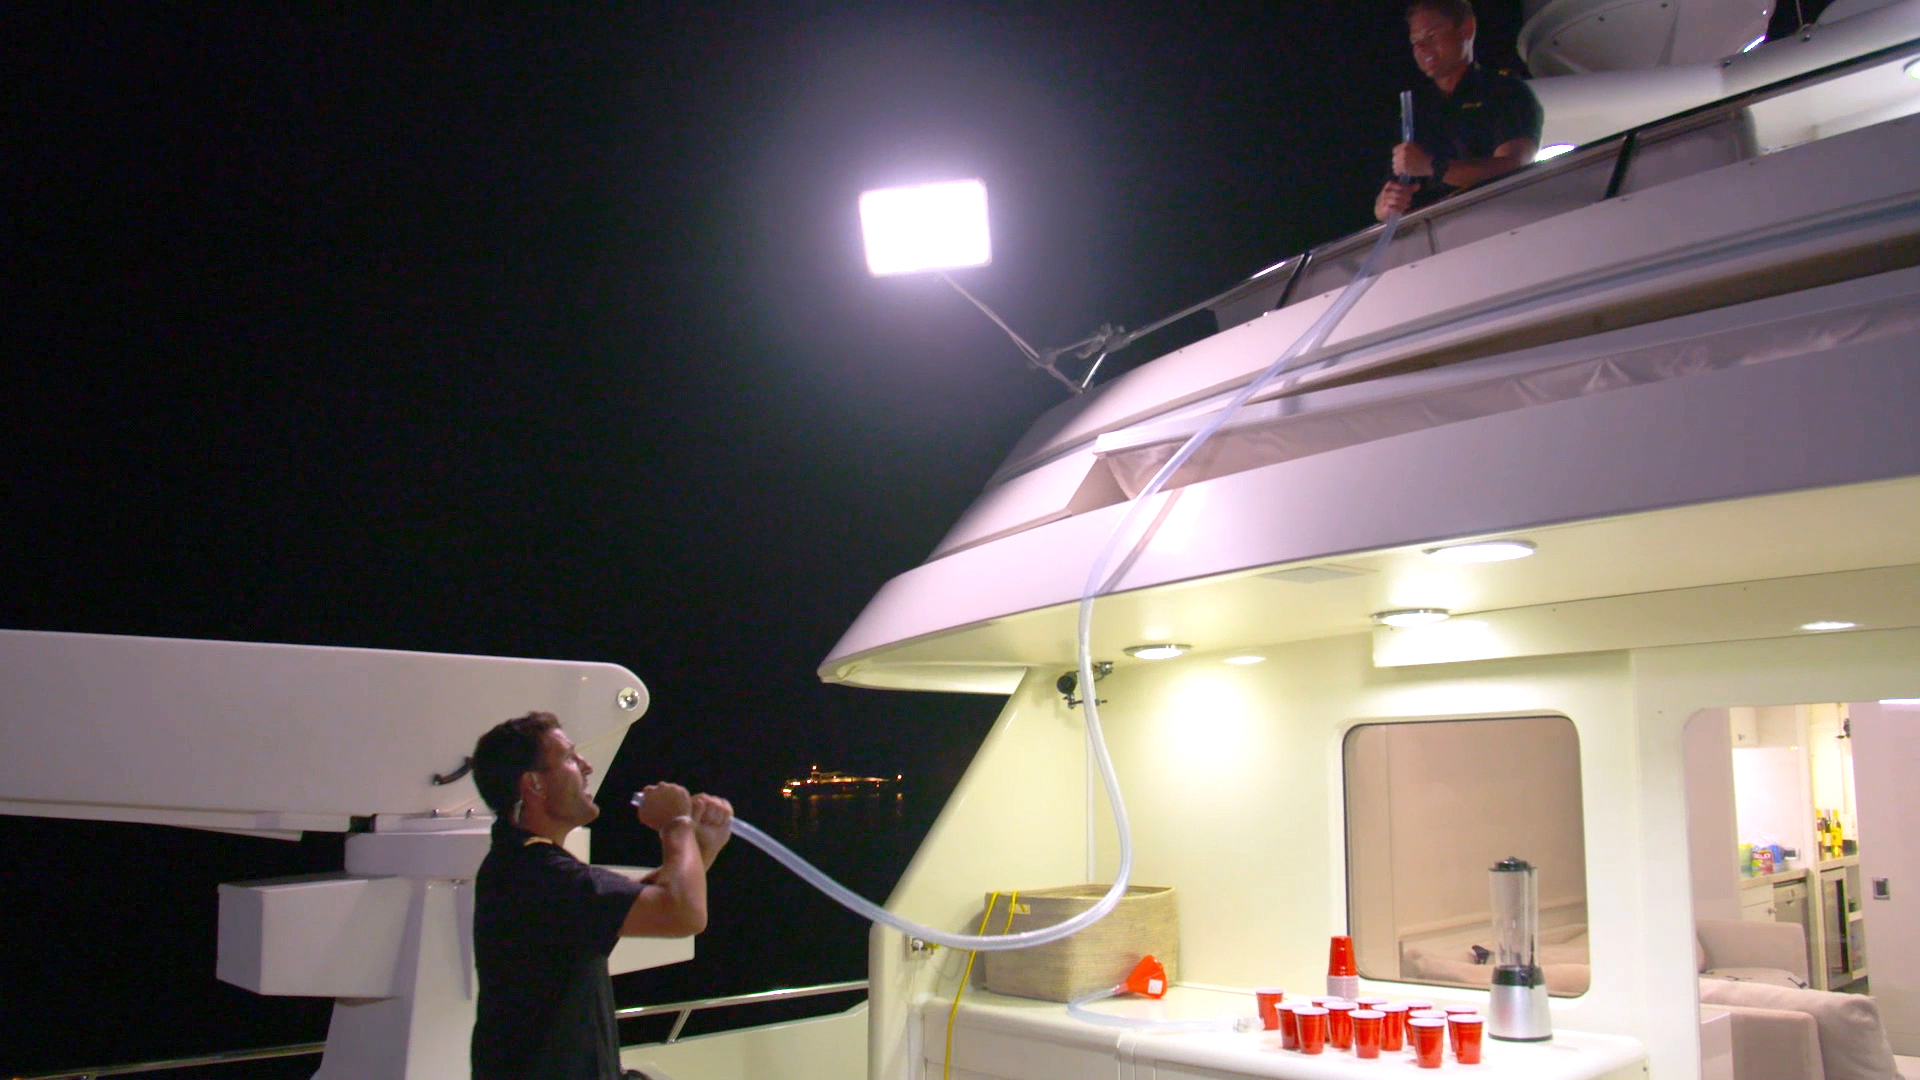 These Below Deck Charter Guests Have the Ultimate College-Themed Party